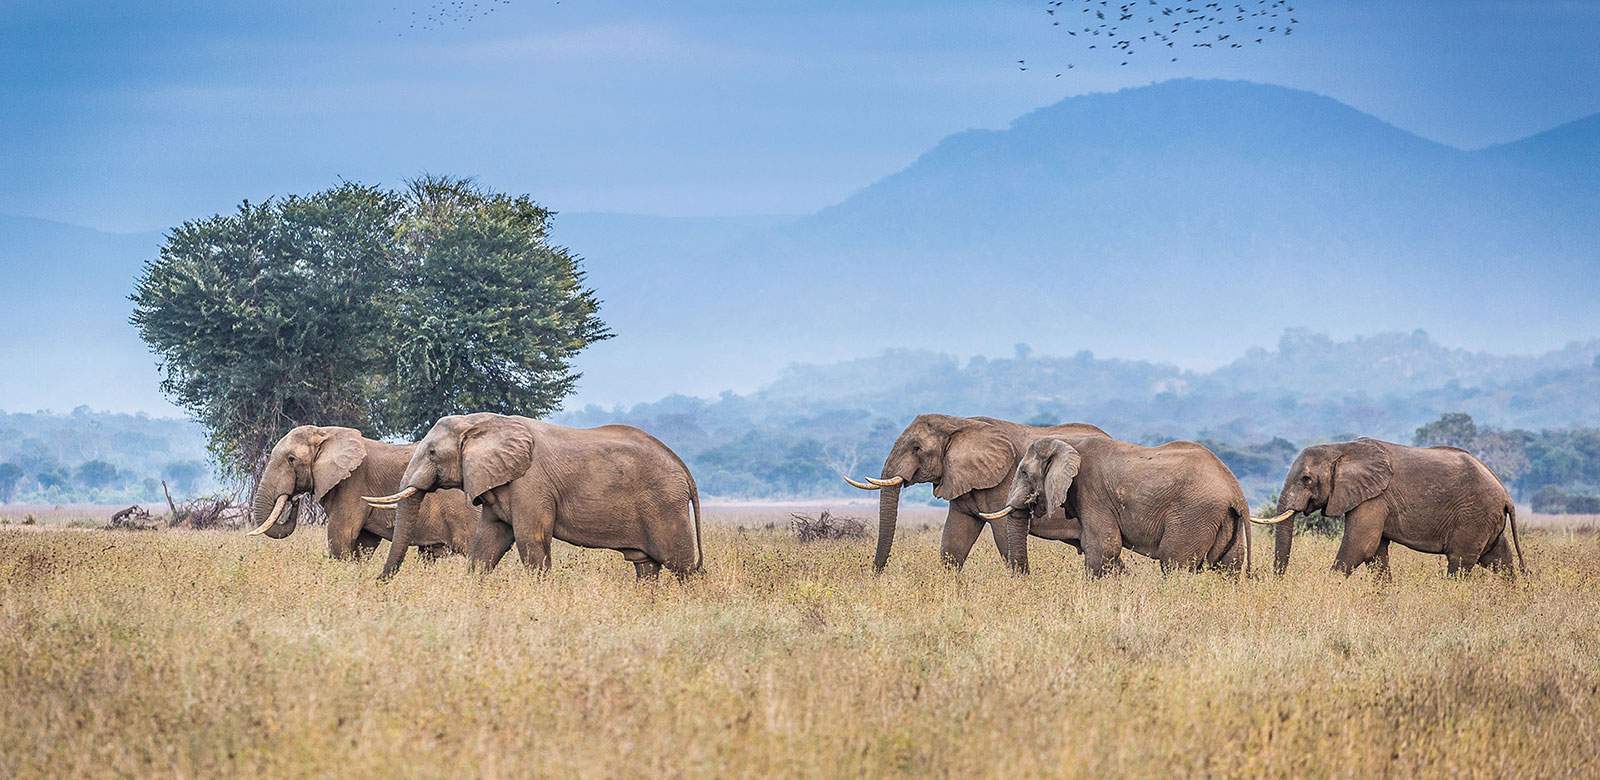 Best African Safari Travel Agency - Africa Endeavours